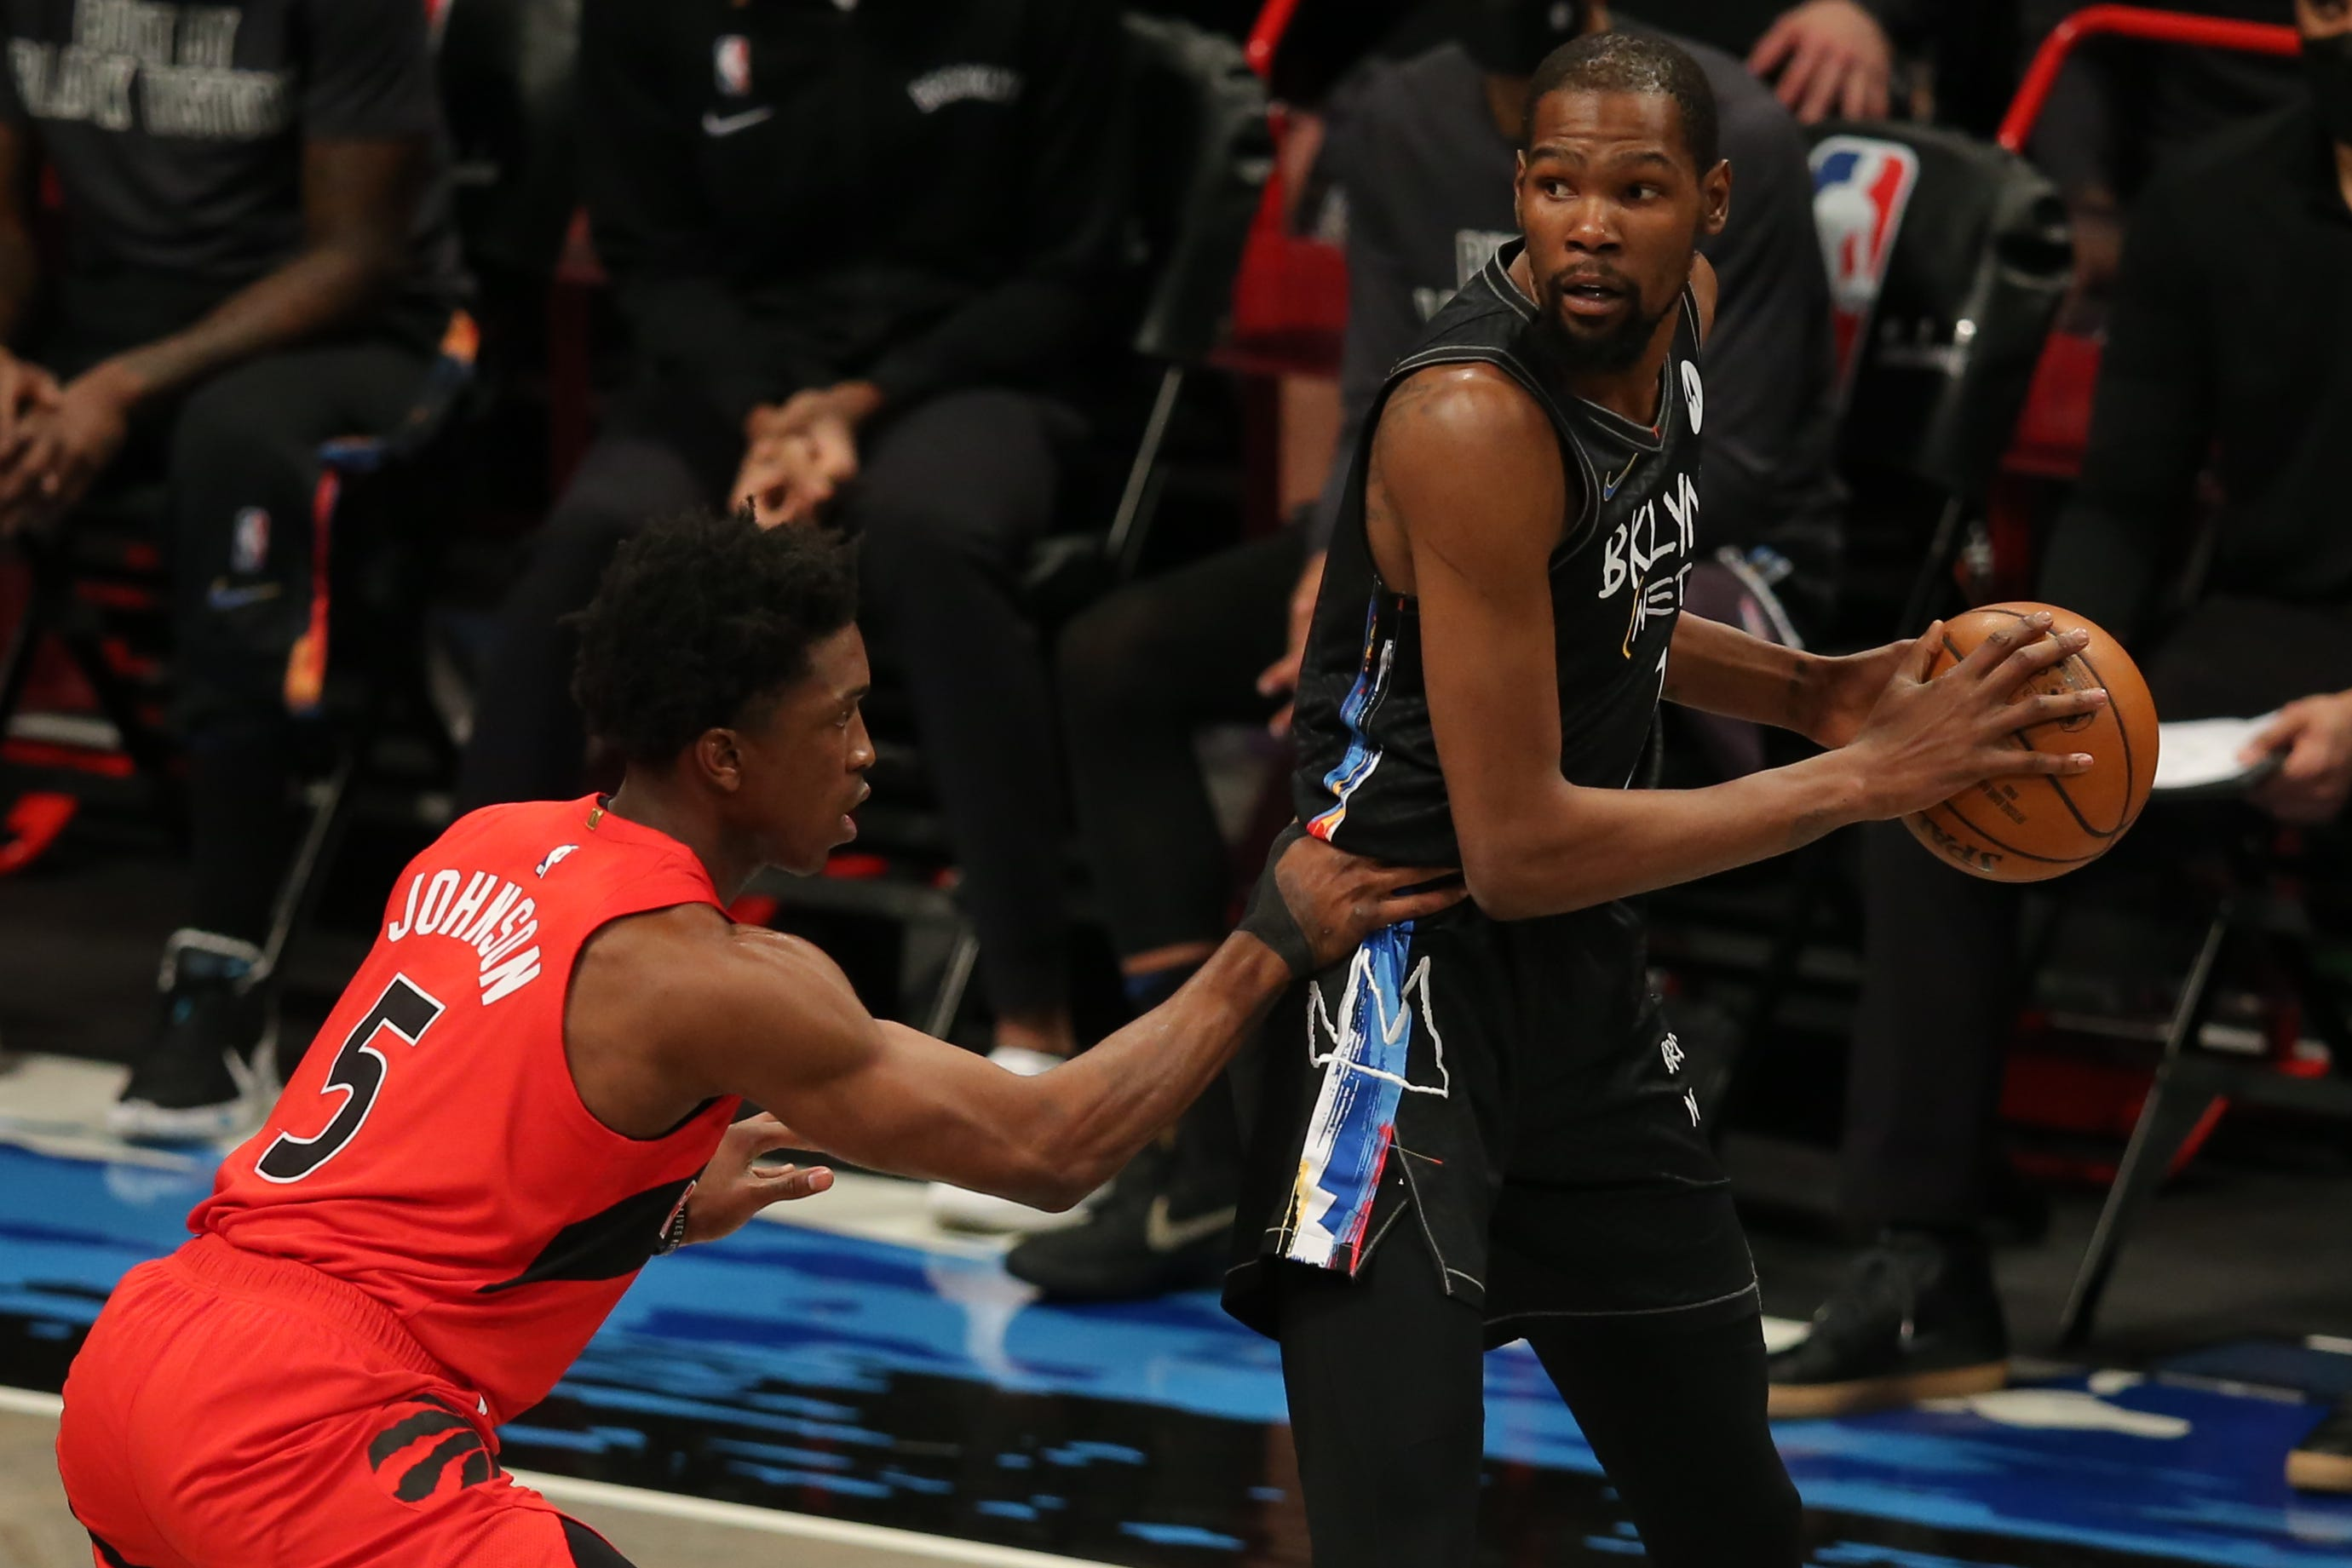 Nets  Kevin Durant doesn t start game, returns, then ruled out due to NBA health and safety protocols